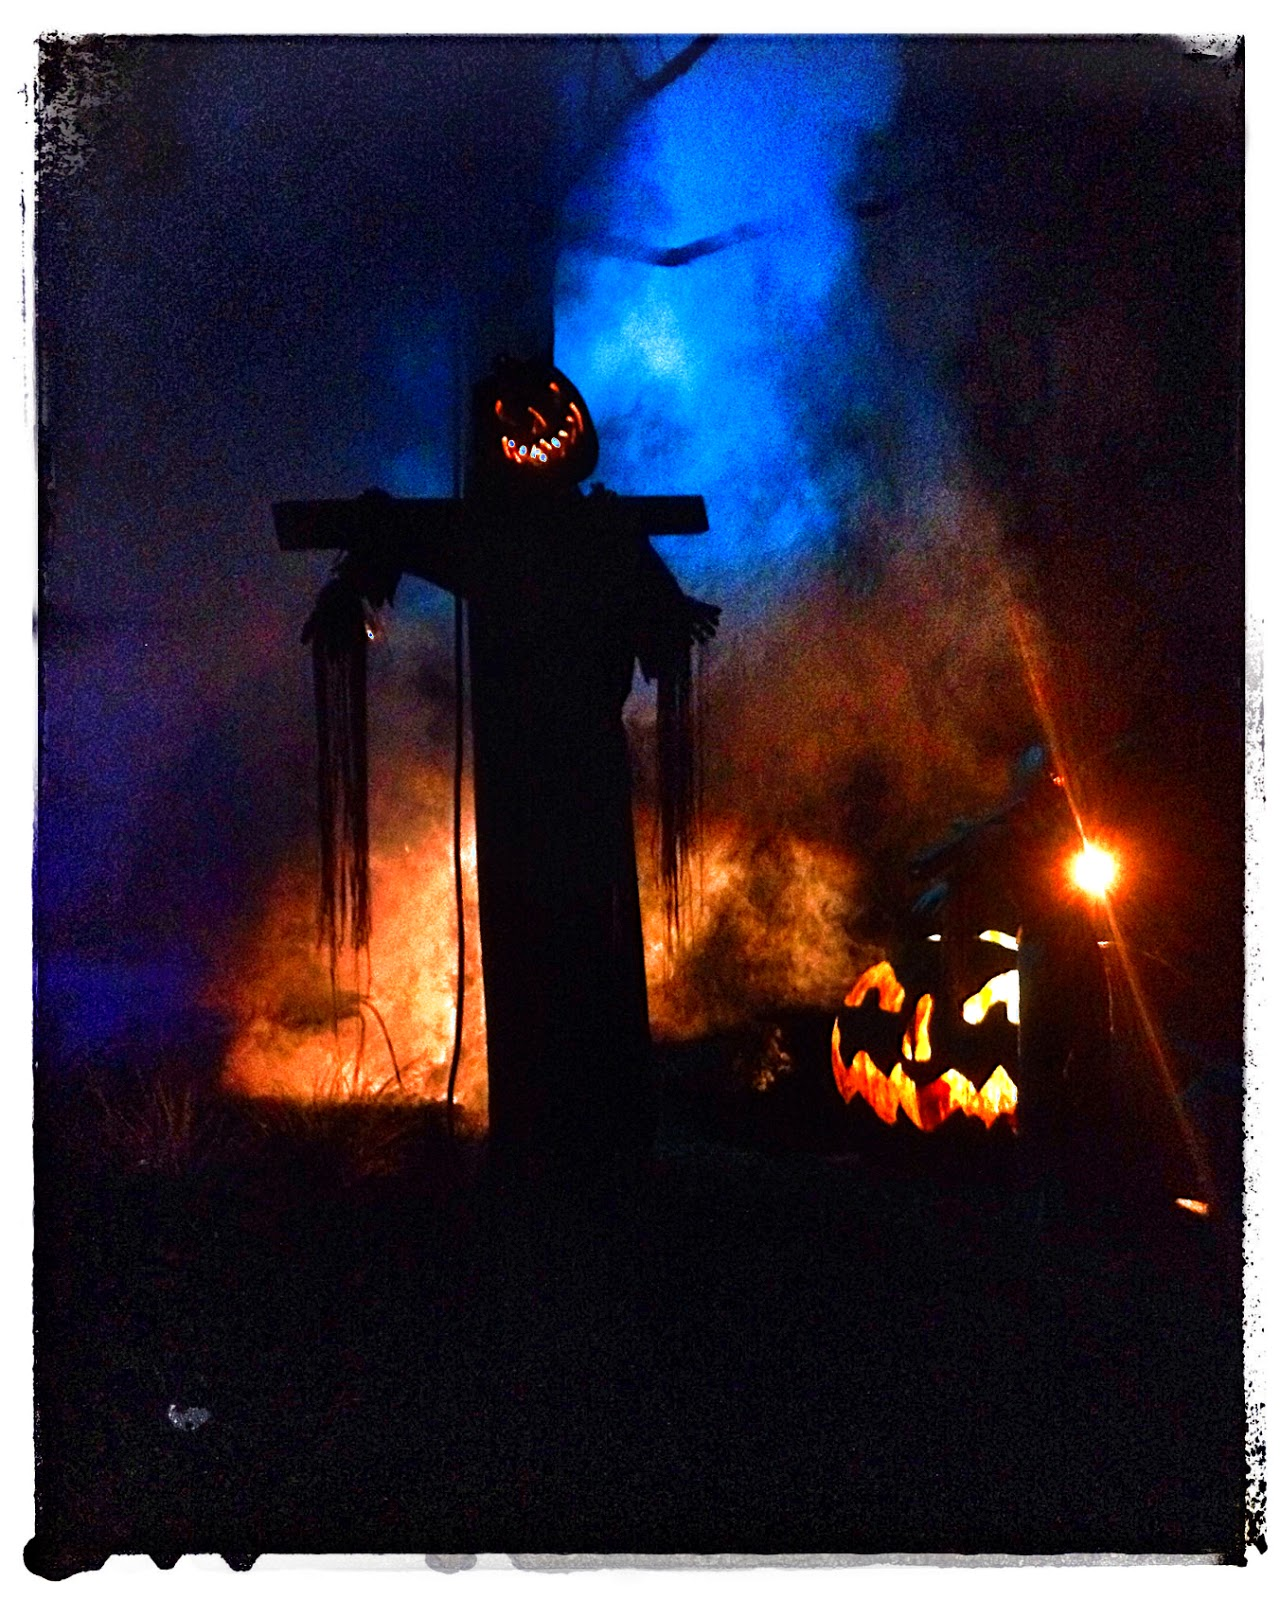 Jack-O-Lantern at Busch Gardens, Williamsburg via foobella.blogspot.com